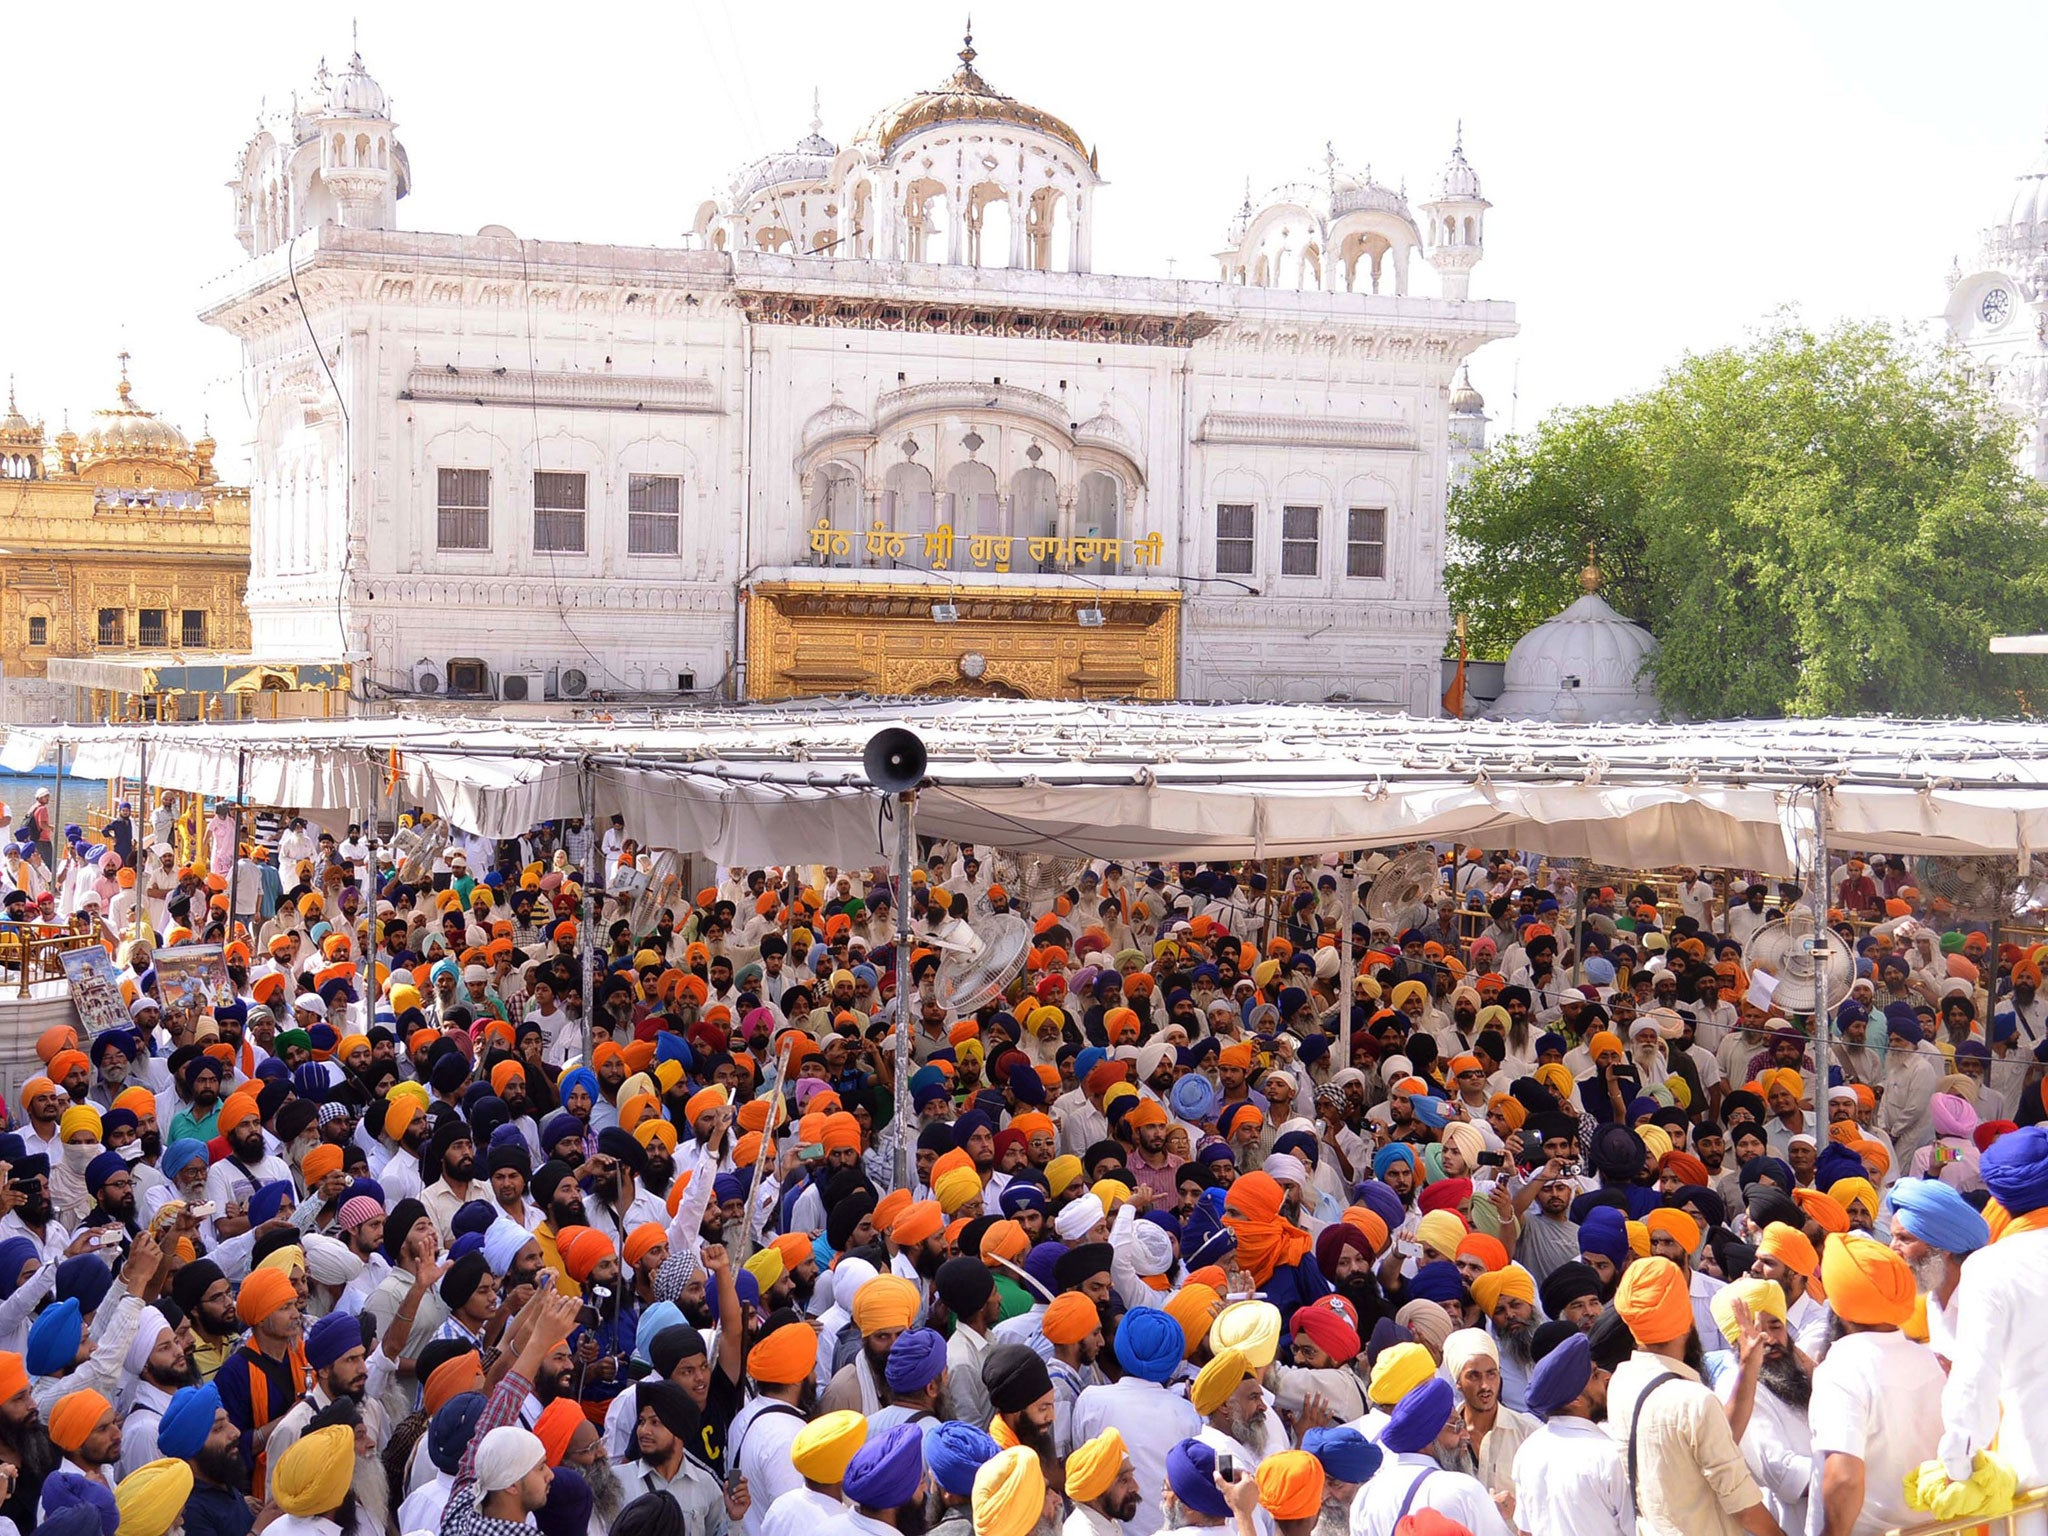 amritsar, home of the golden temple in india, has always been